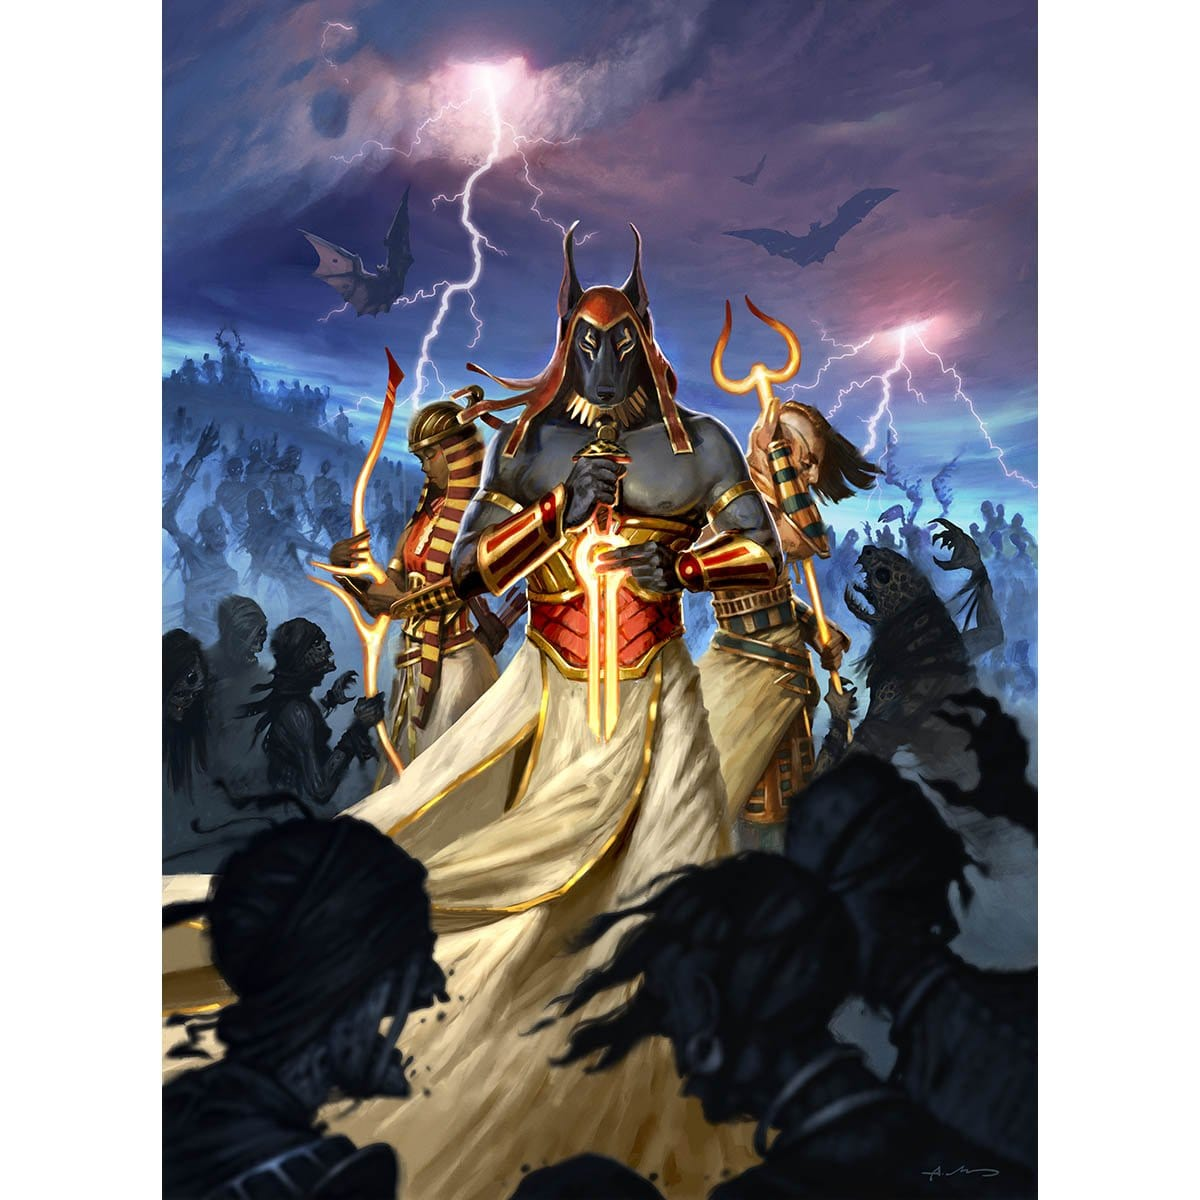 Pay Tribute to Me Print - Print - Original Magic Art - Accessories for Magic the Gathering and other card games